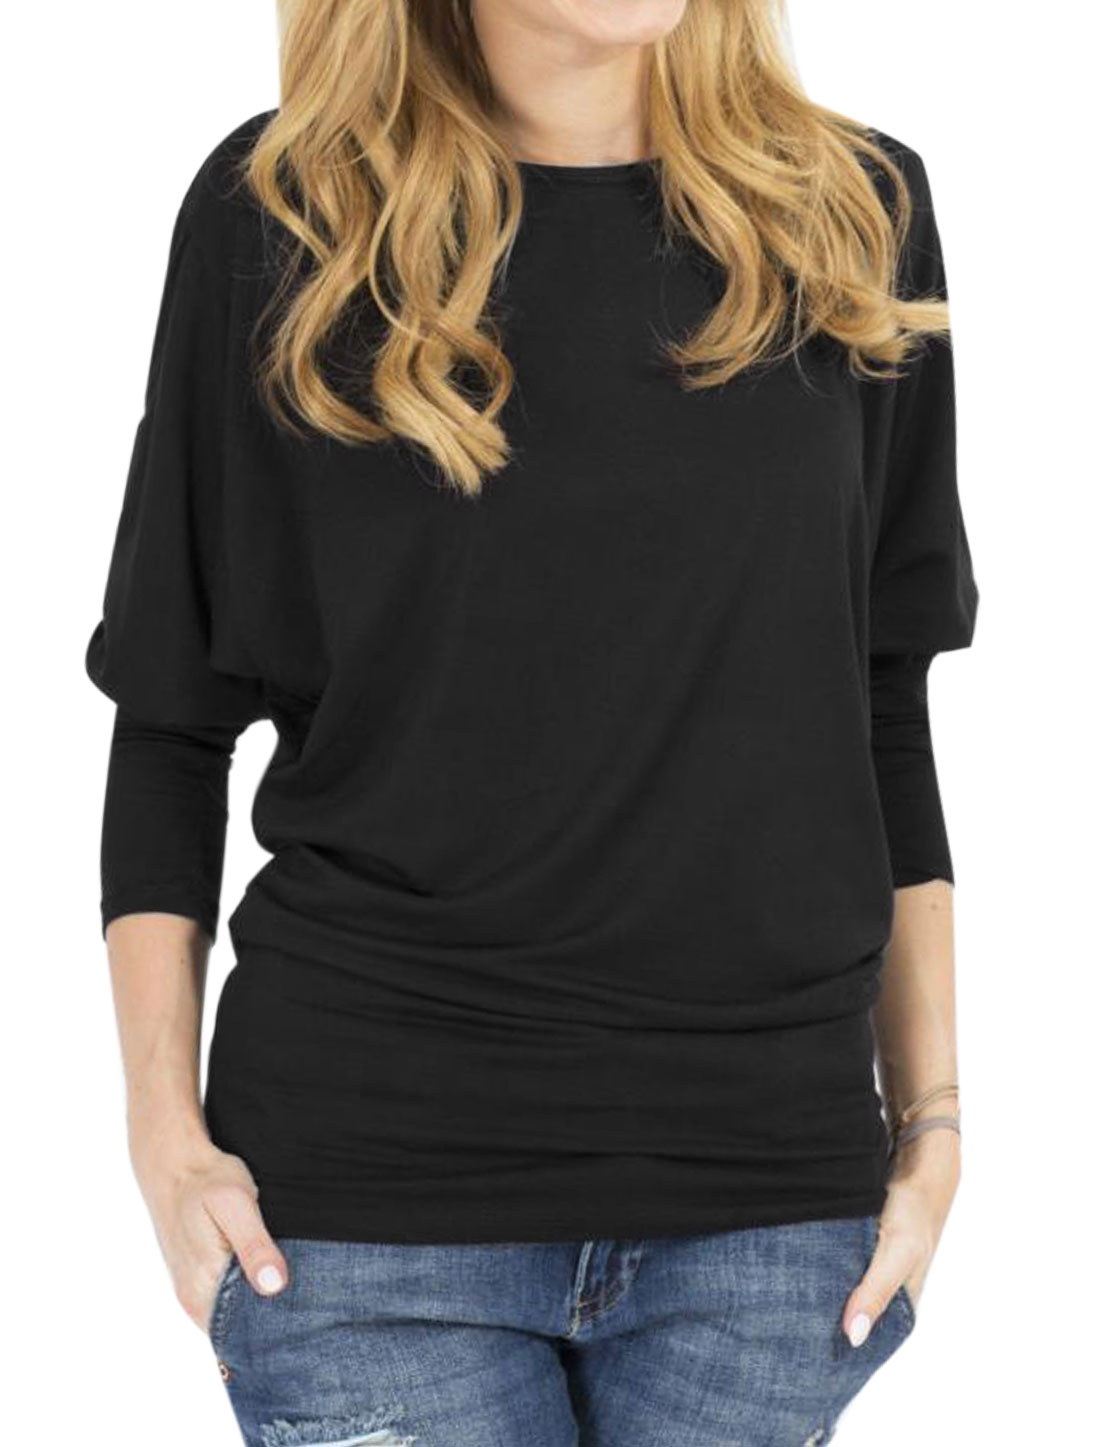 Lady Round Neck Dolman Sleeves Loose Fit T-Shirt Black M